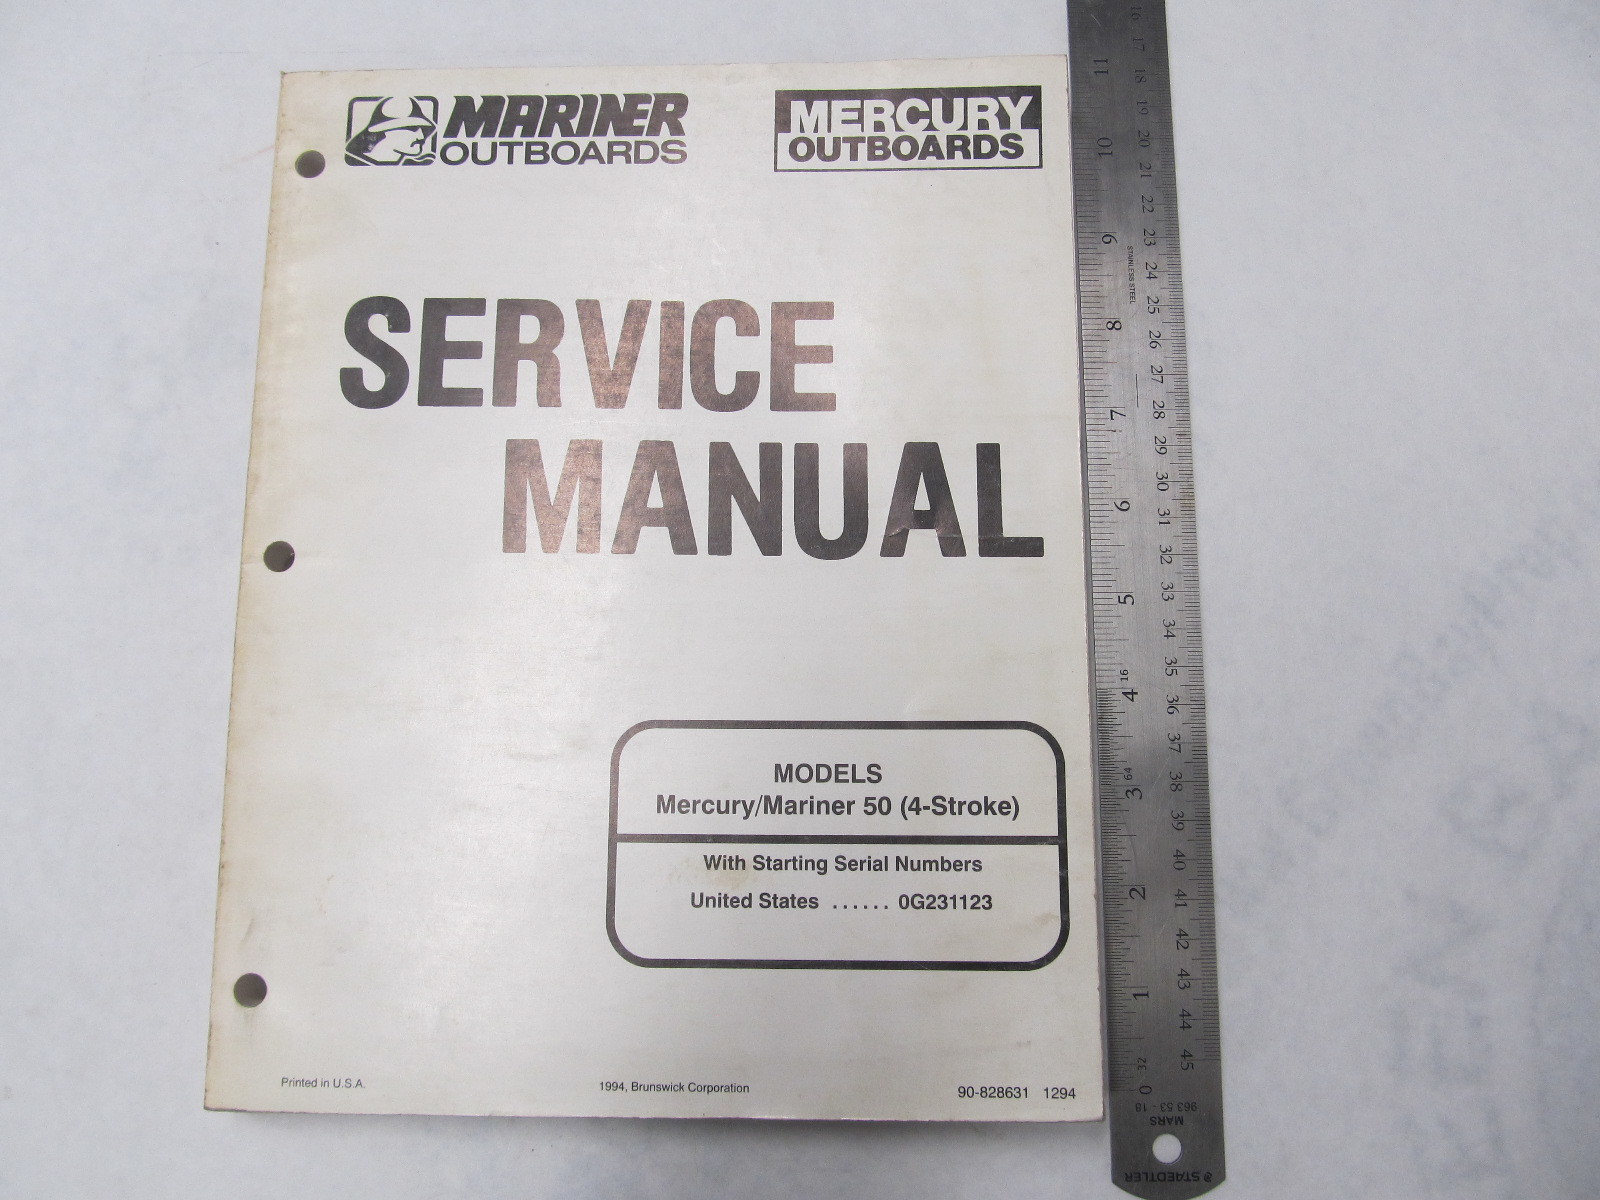 1994 mercury mariner outboard service manual 50 hp 4 stroke ebay rh ebay com mercury 50 hp outboard repair manual 1983 mercury 50 hp outboard service manual